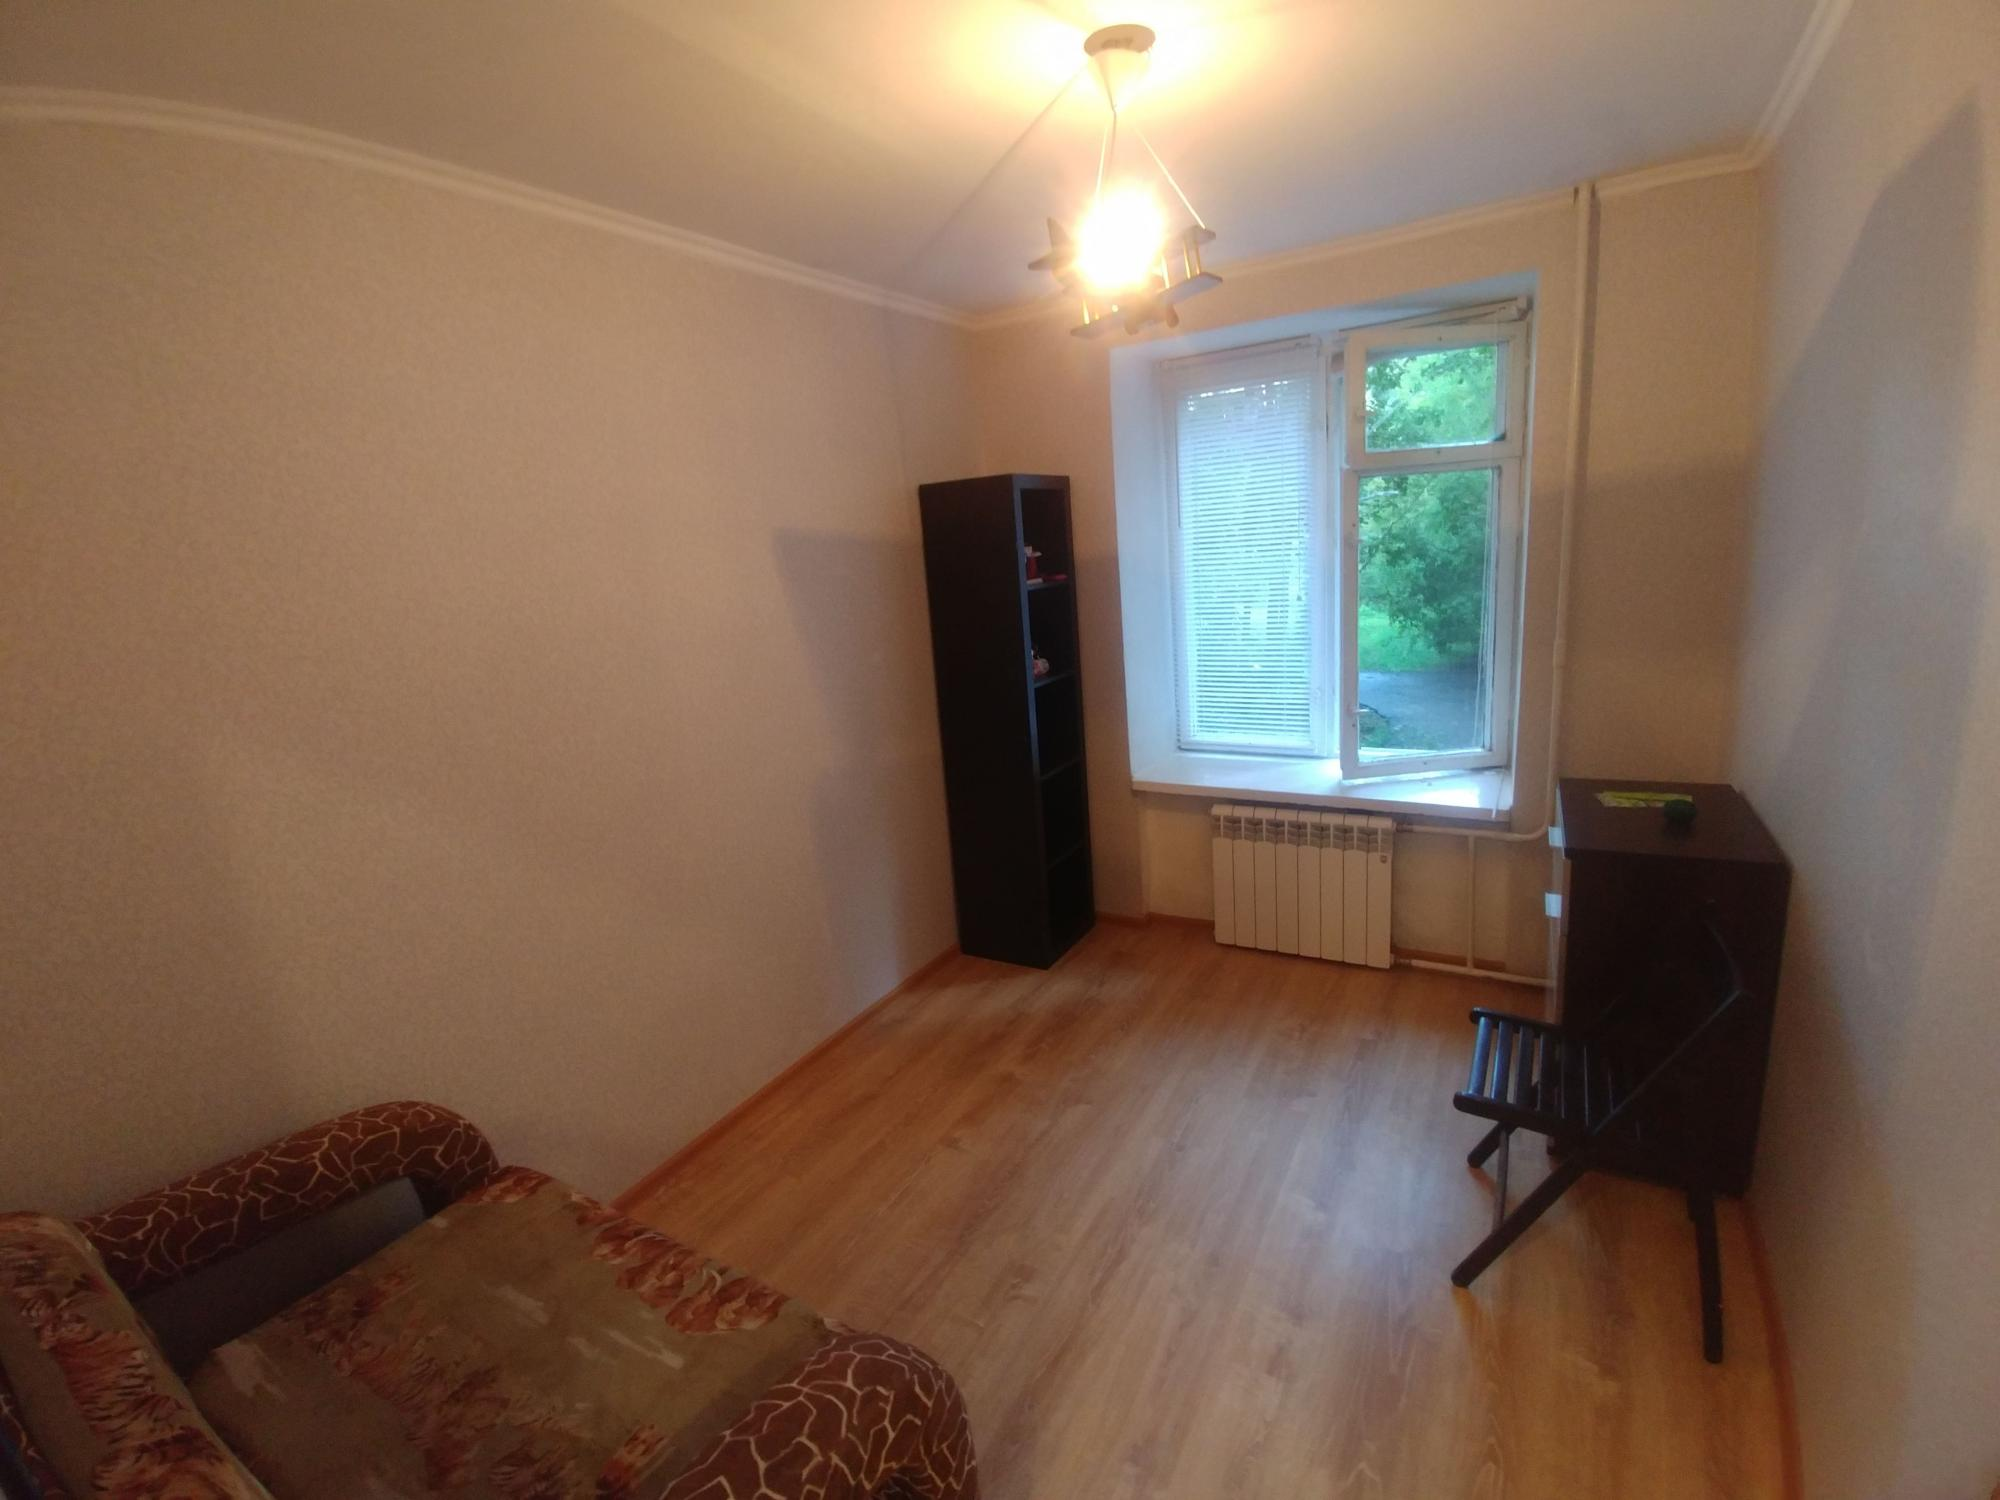 Apartment, 2 rooms, 40 m2 in Moscow 89015352320 buy 2